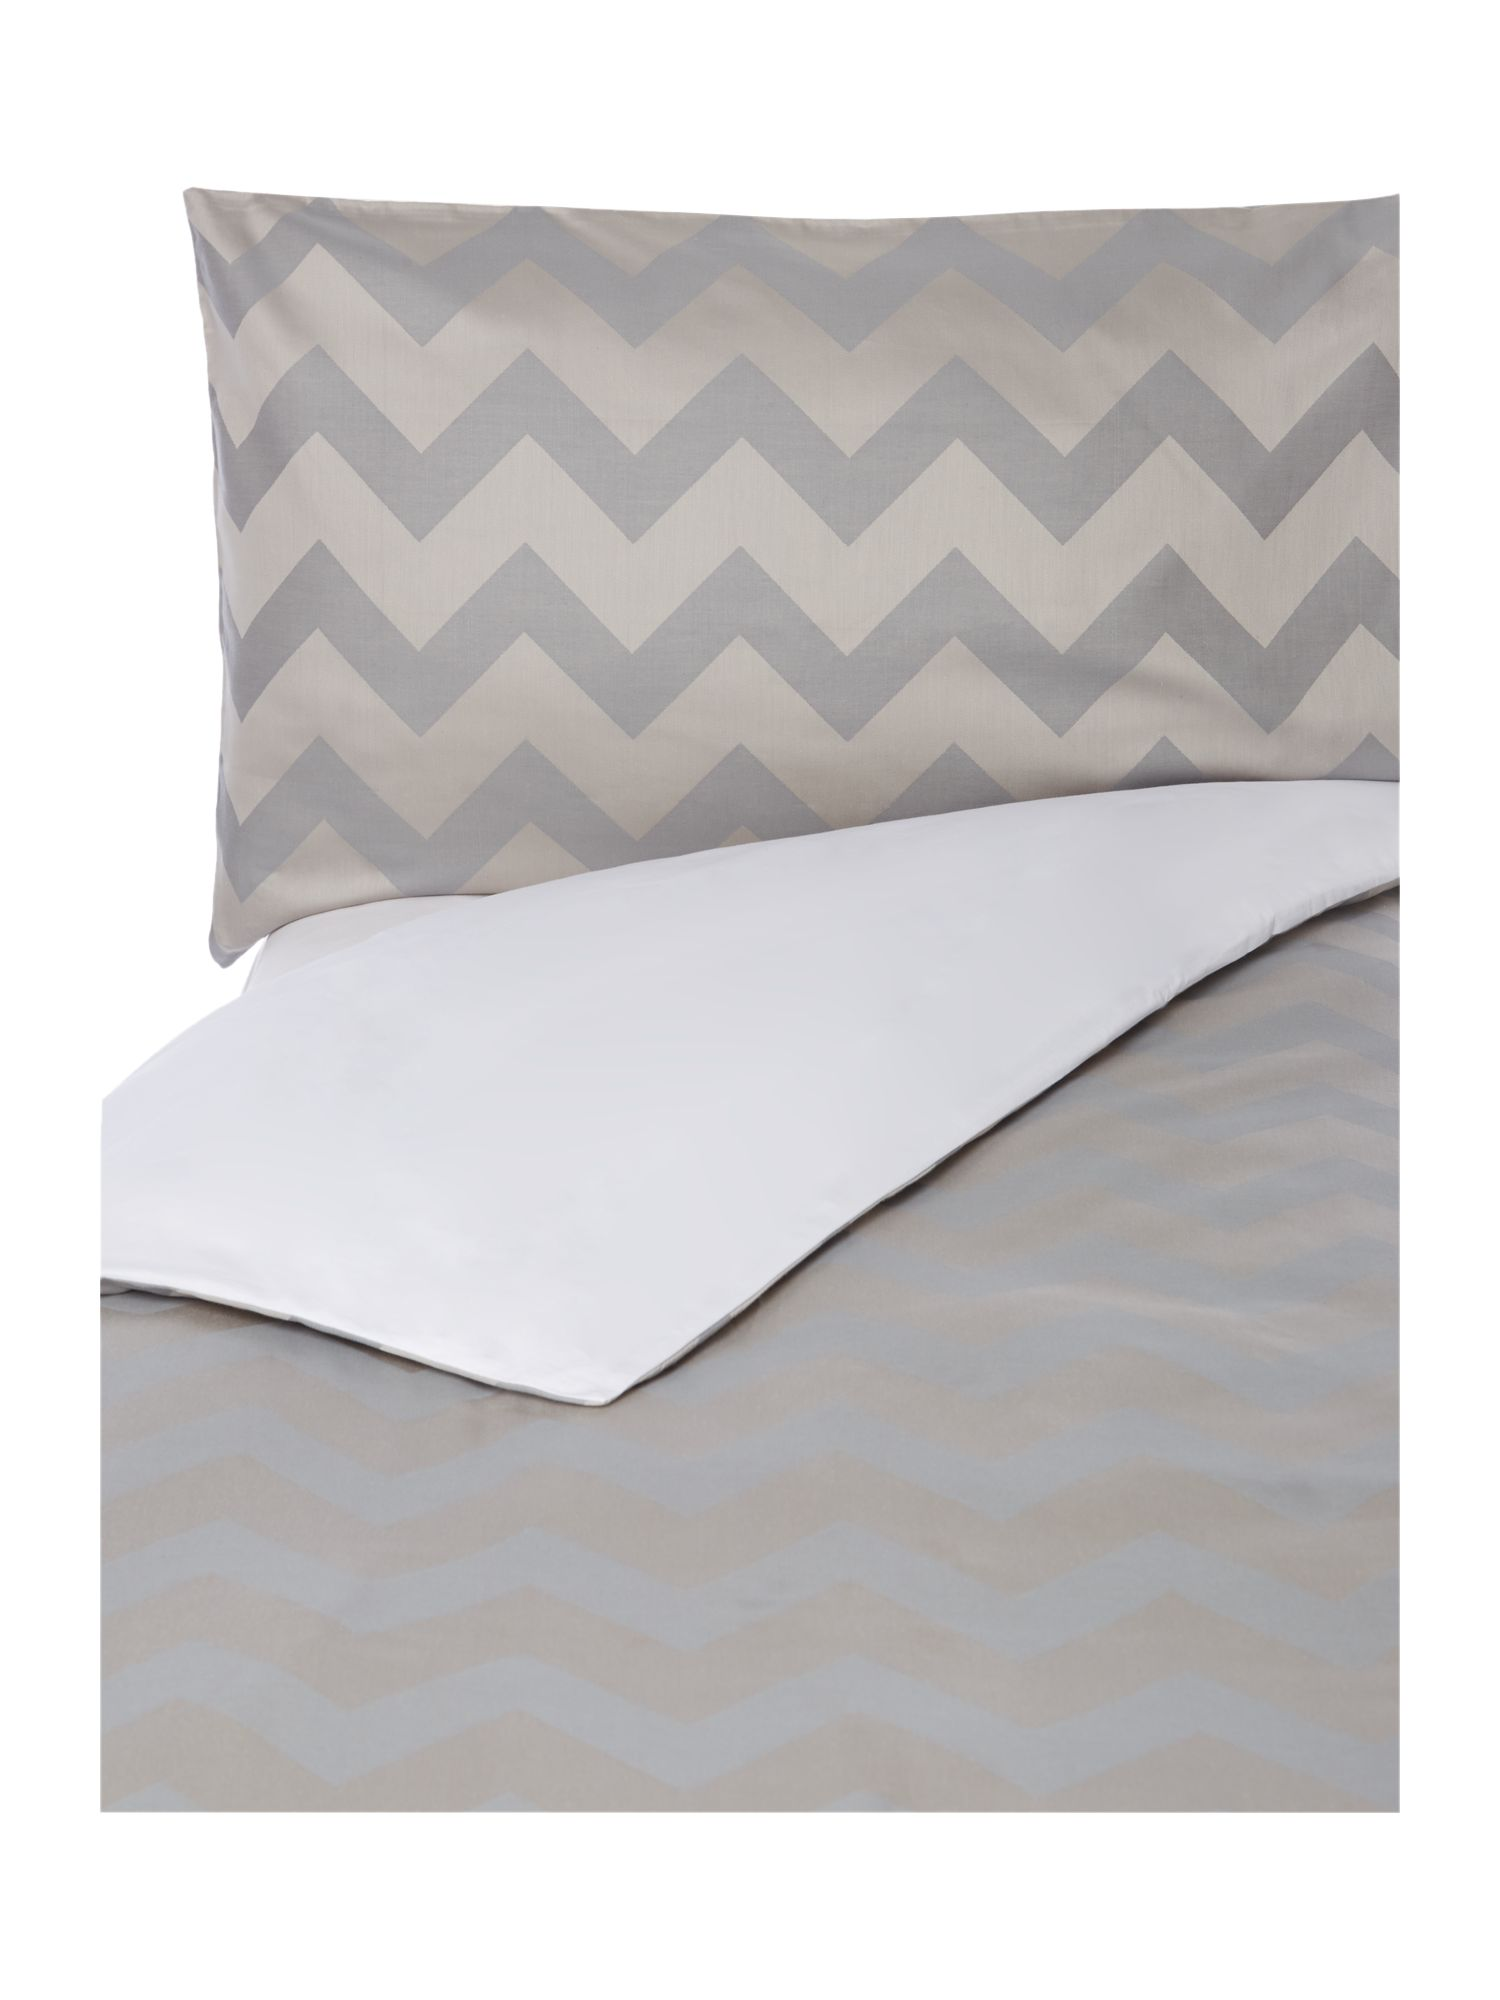 Slate chevron bed linen